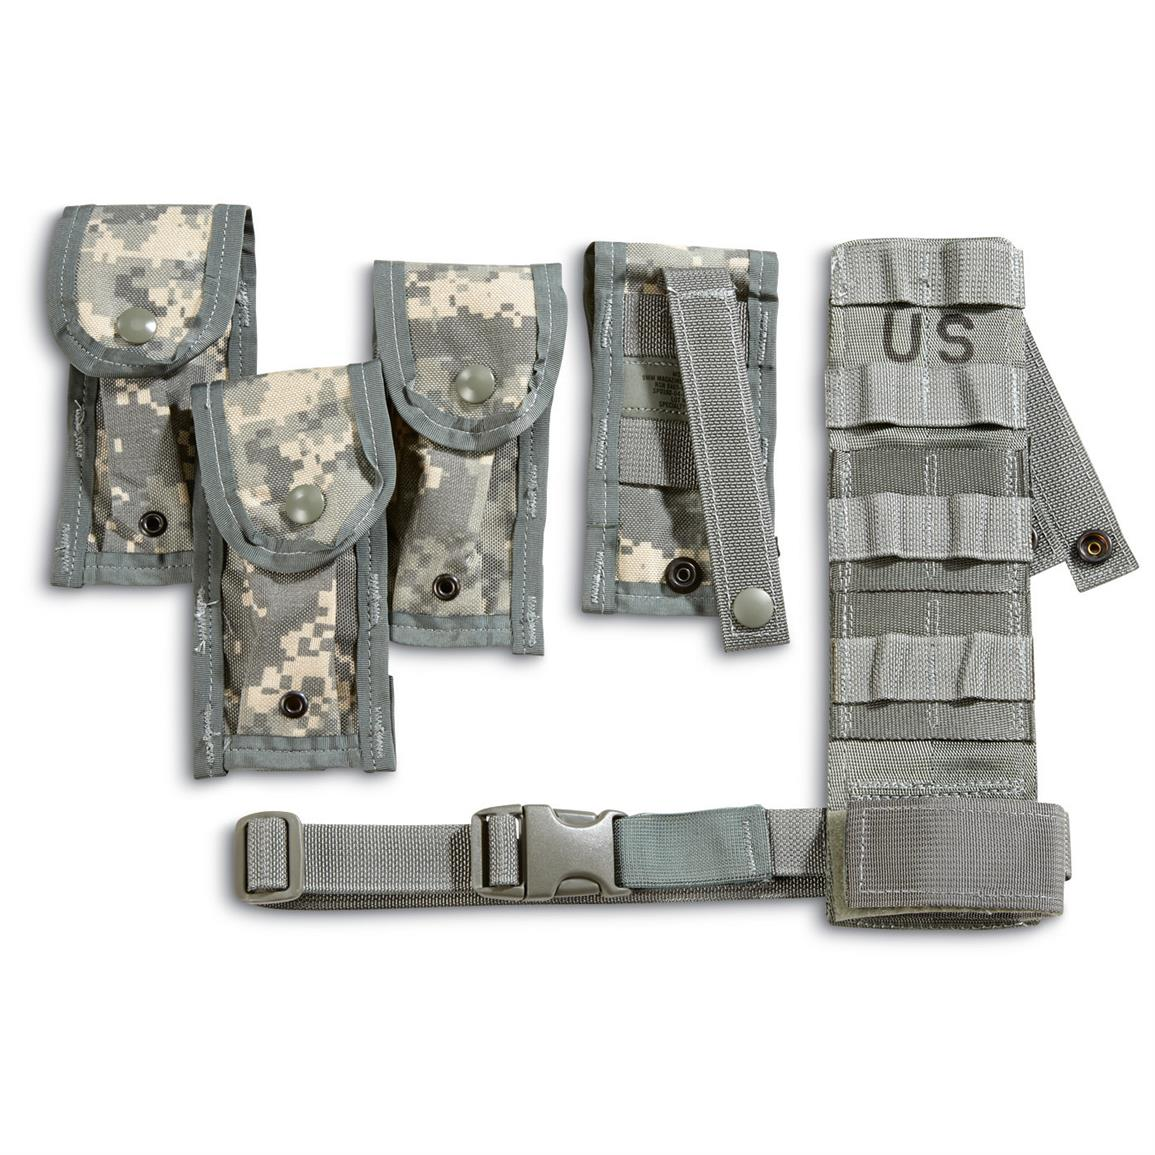 U S  Military Surplus 9mm Magazine Pouches with Holster Leg Extender, 4  Pack, New - $12 59